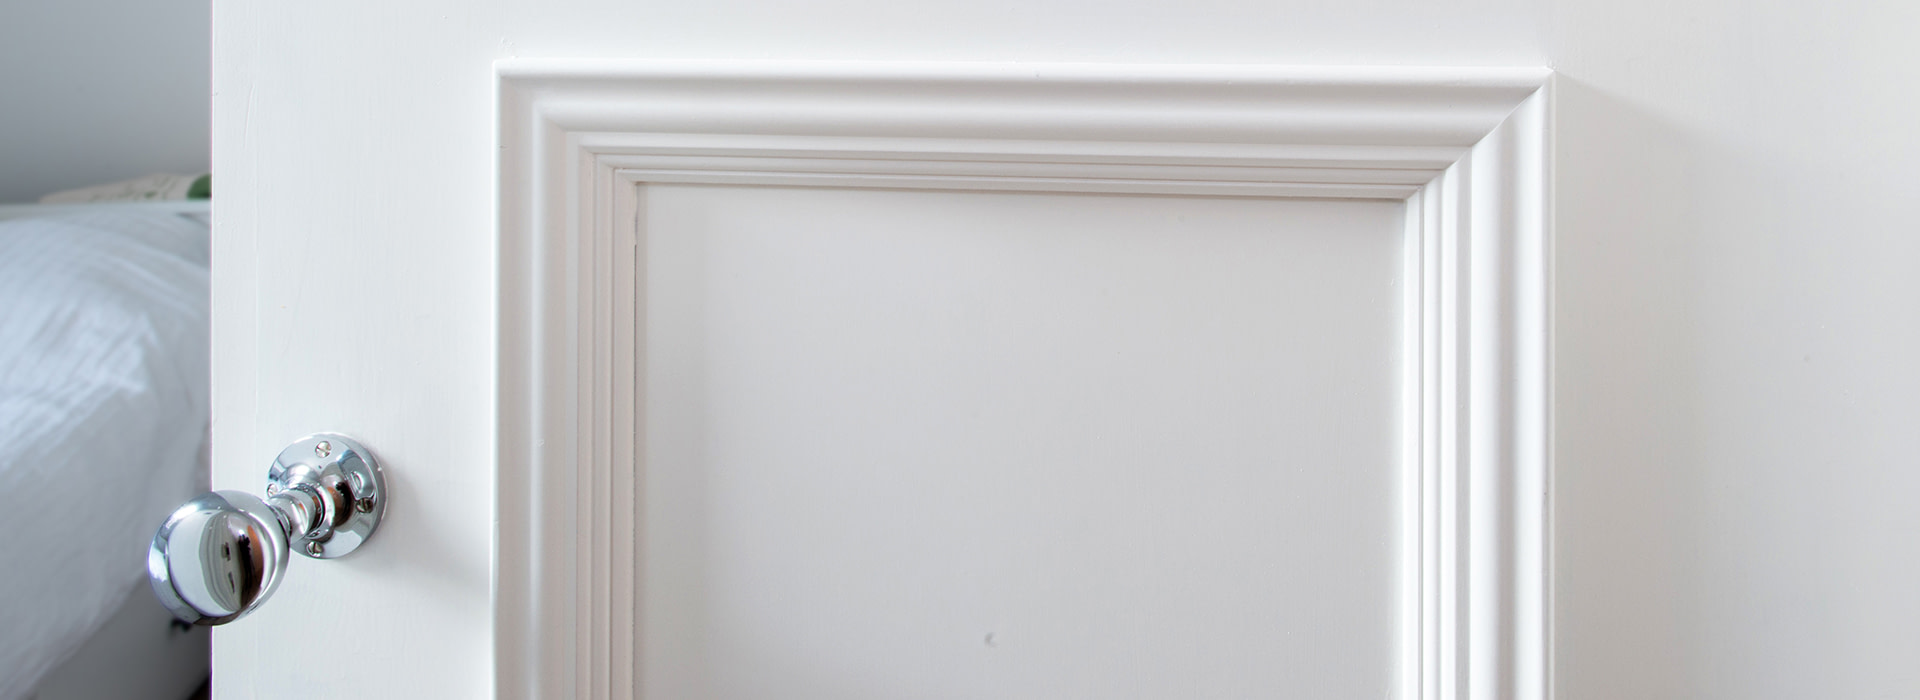 Doors with oversized moulding